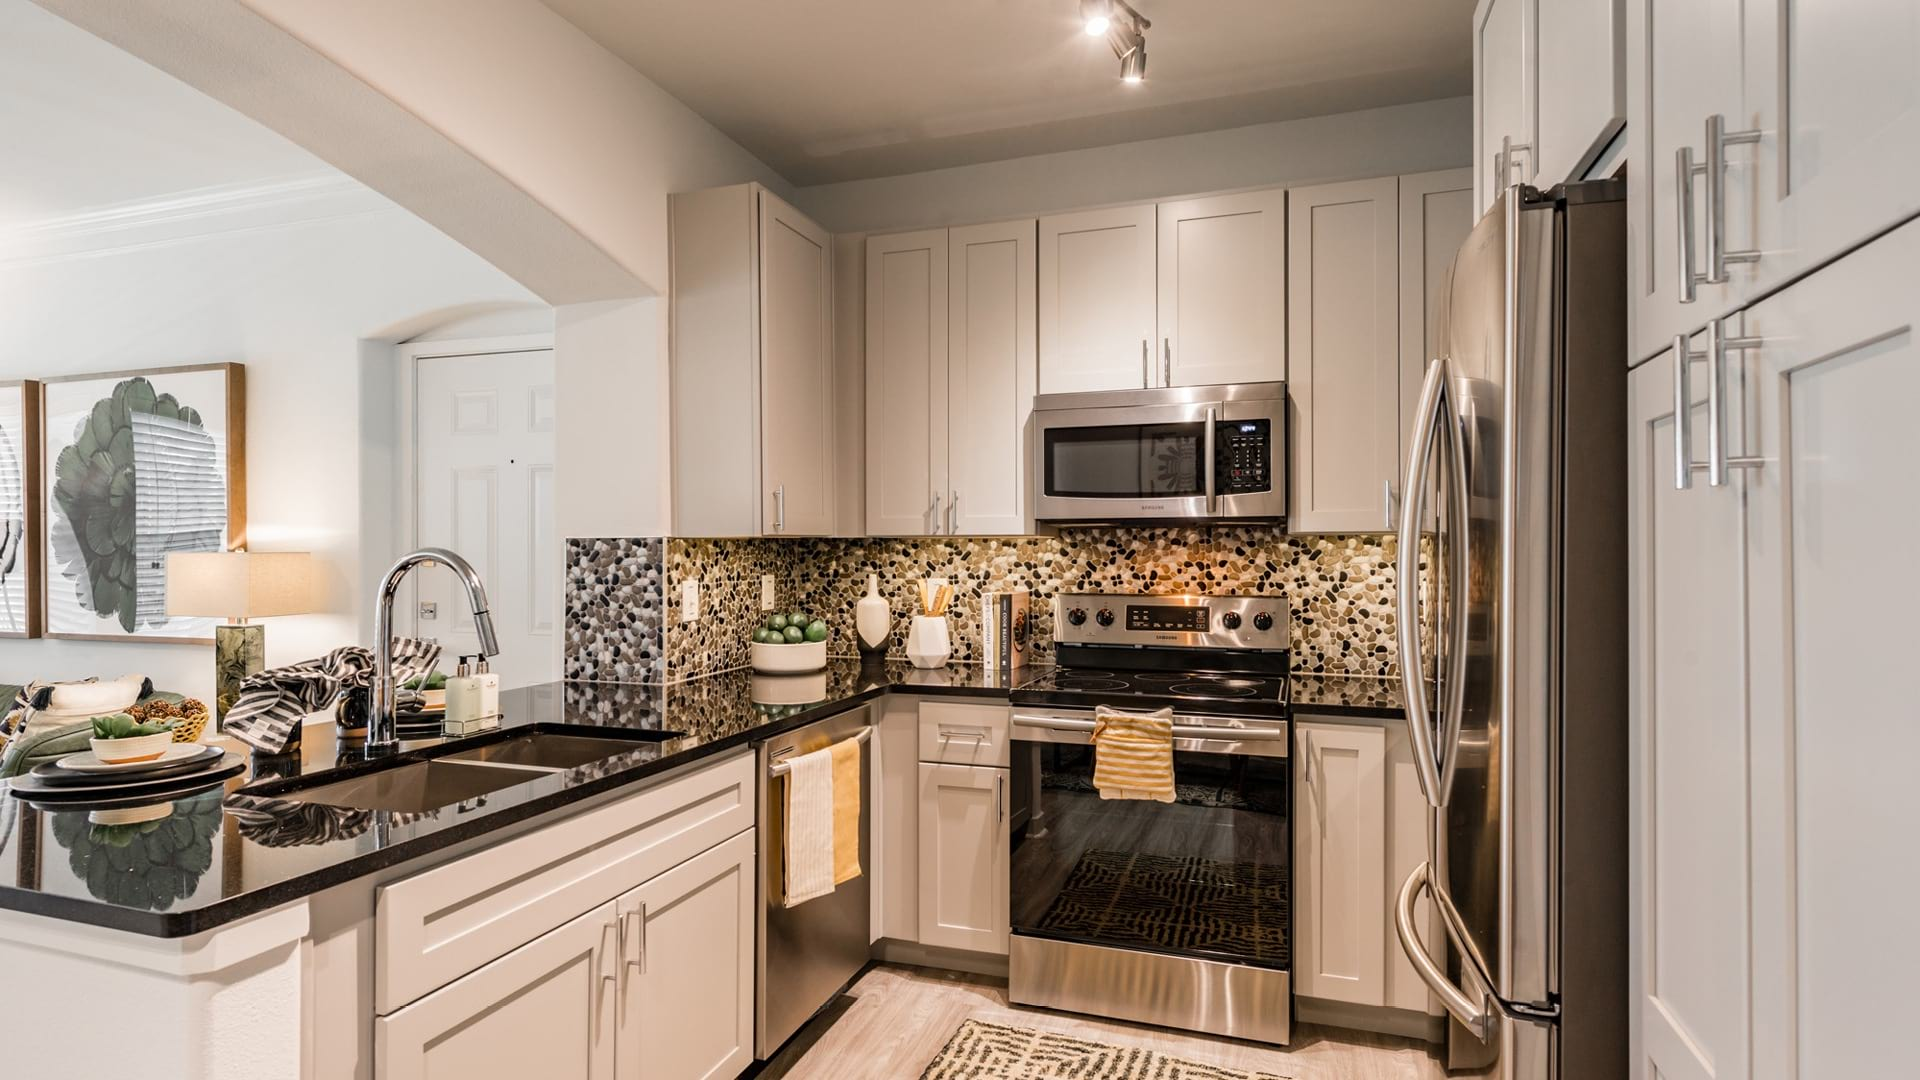 Open-concept kitchen with modern cabinetry and lighting at our upscale apartments in Houston, TX